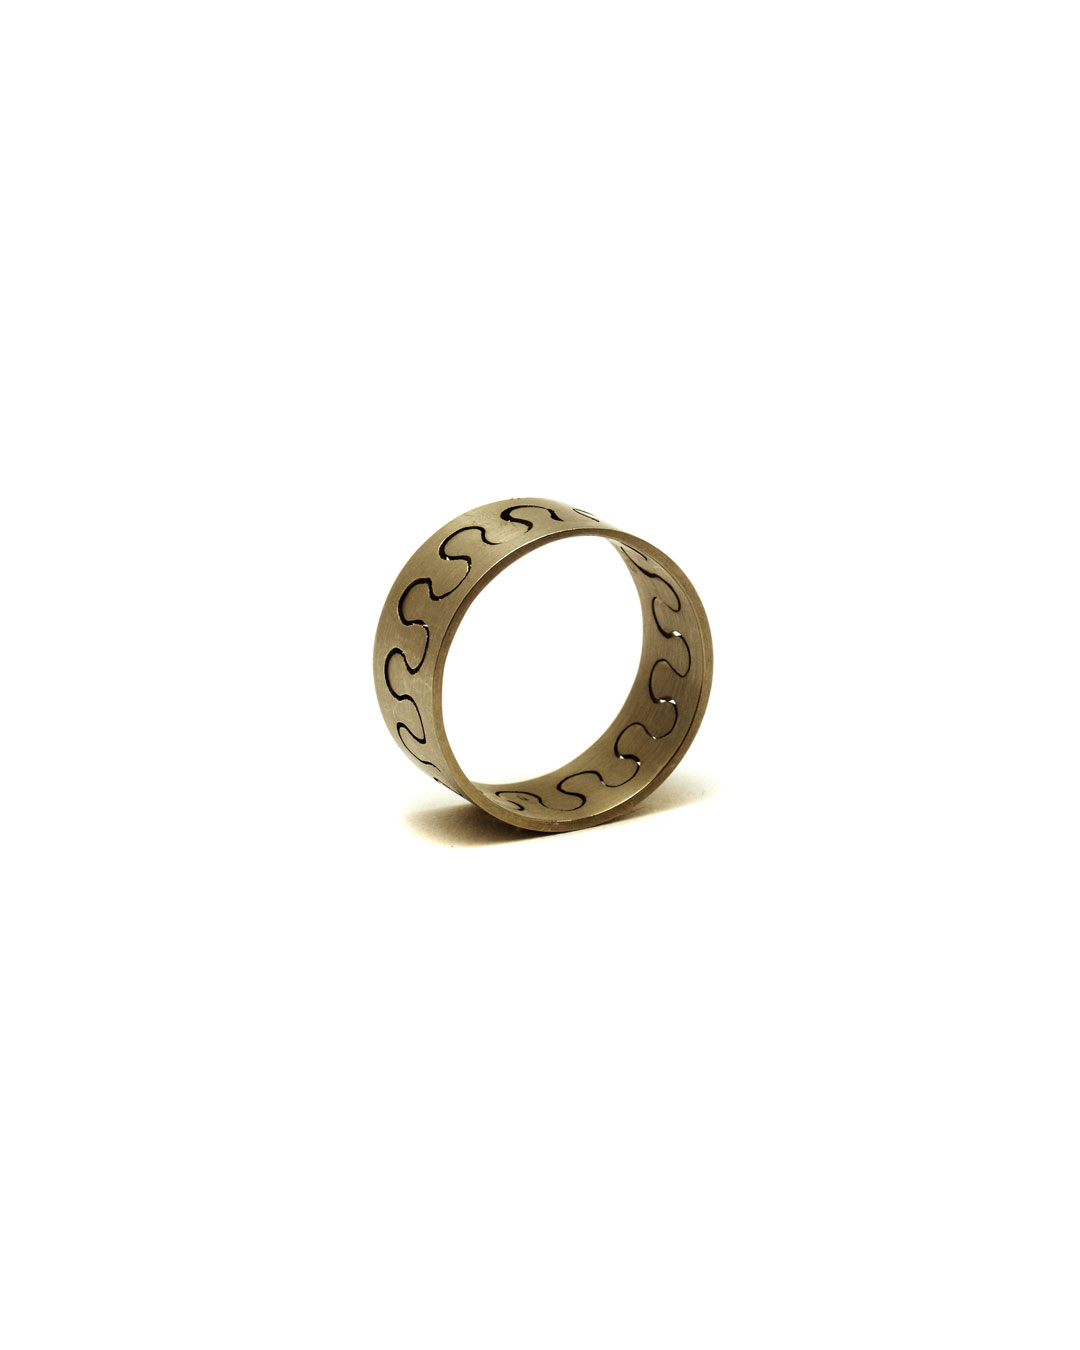 Herman Hermsen, Meanderring, 1995, ring; 18ct gold, ø 20 mm, €1100